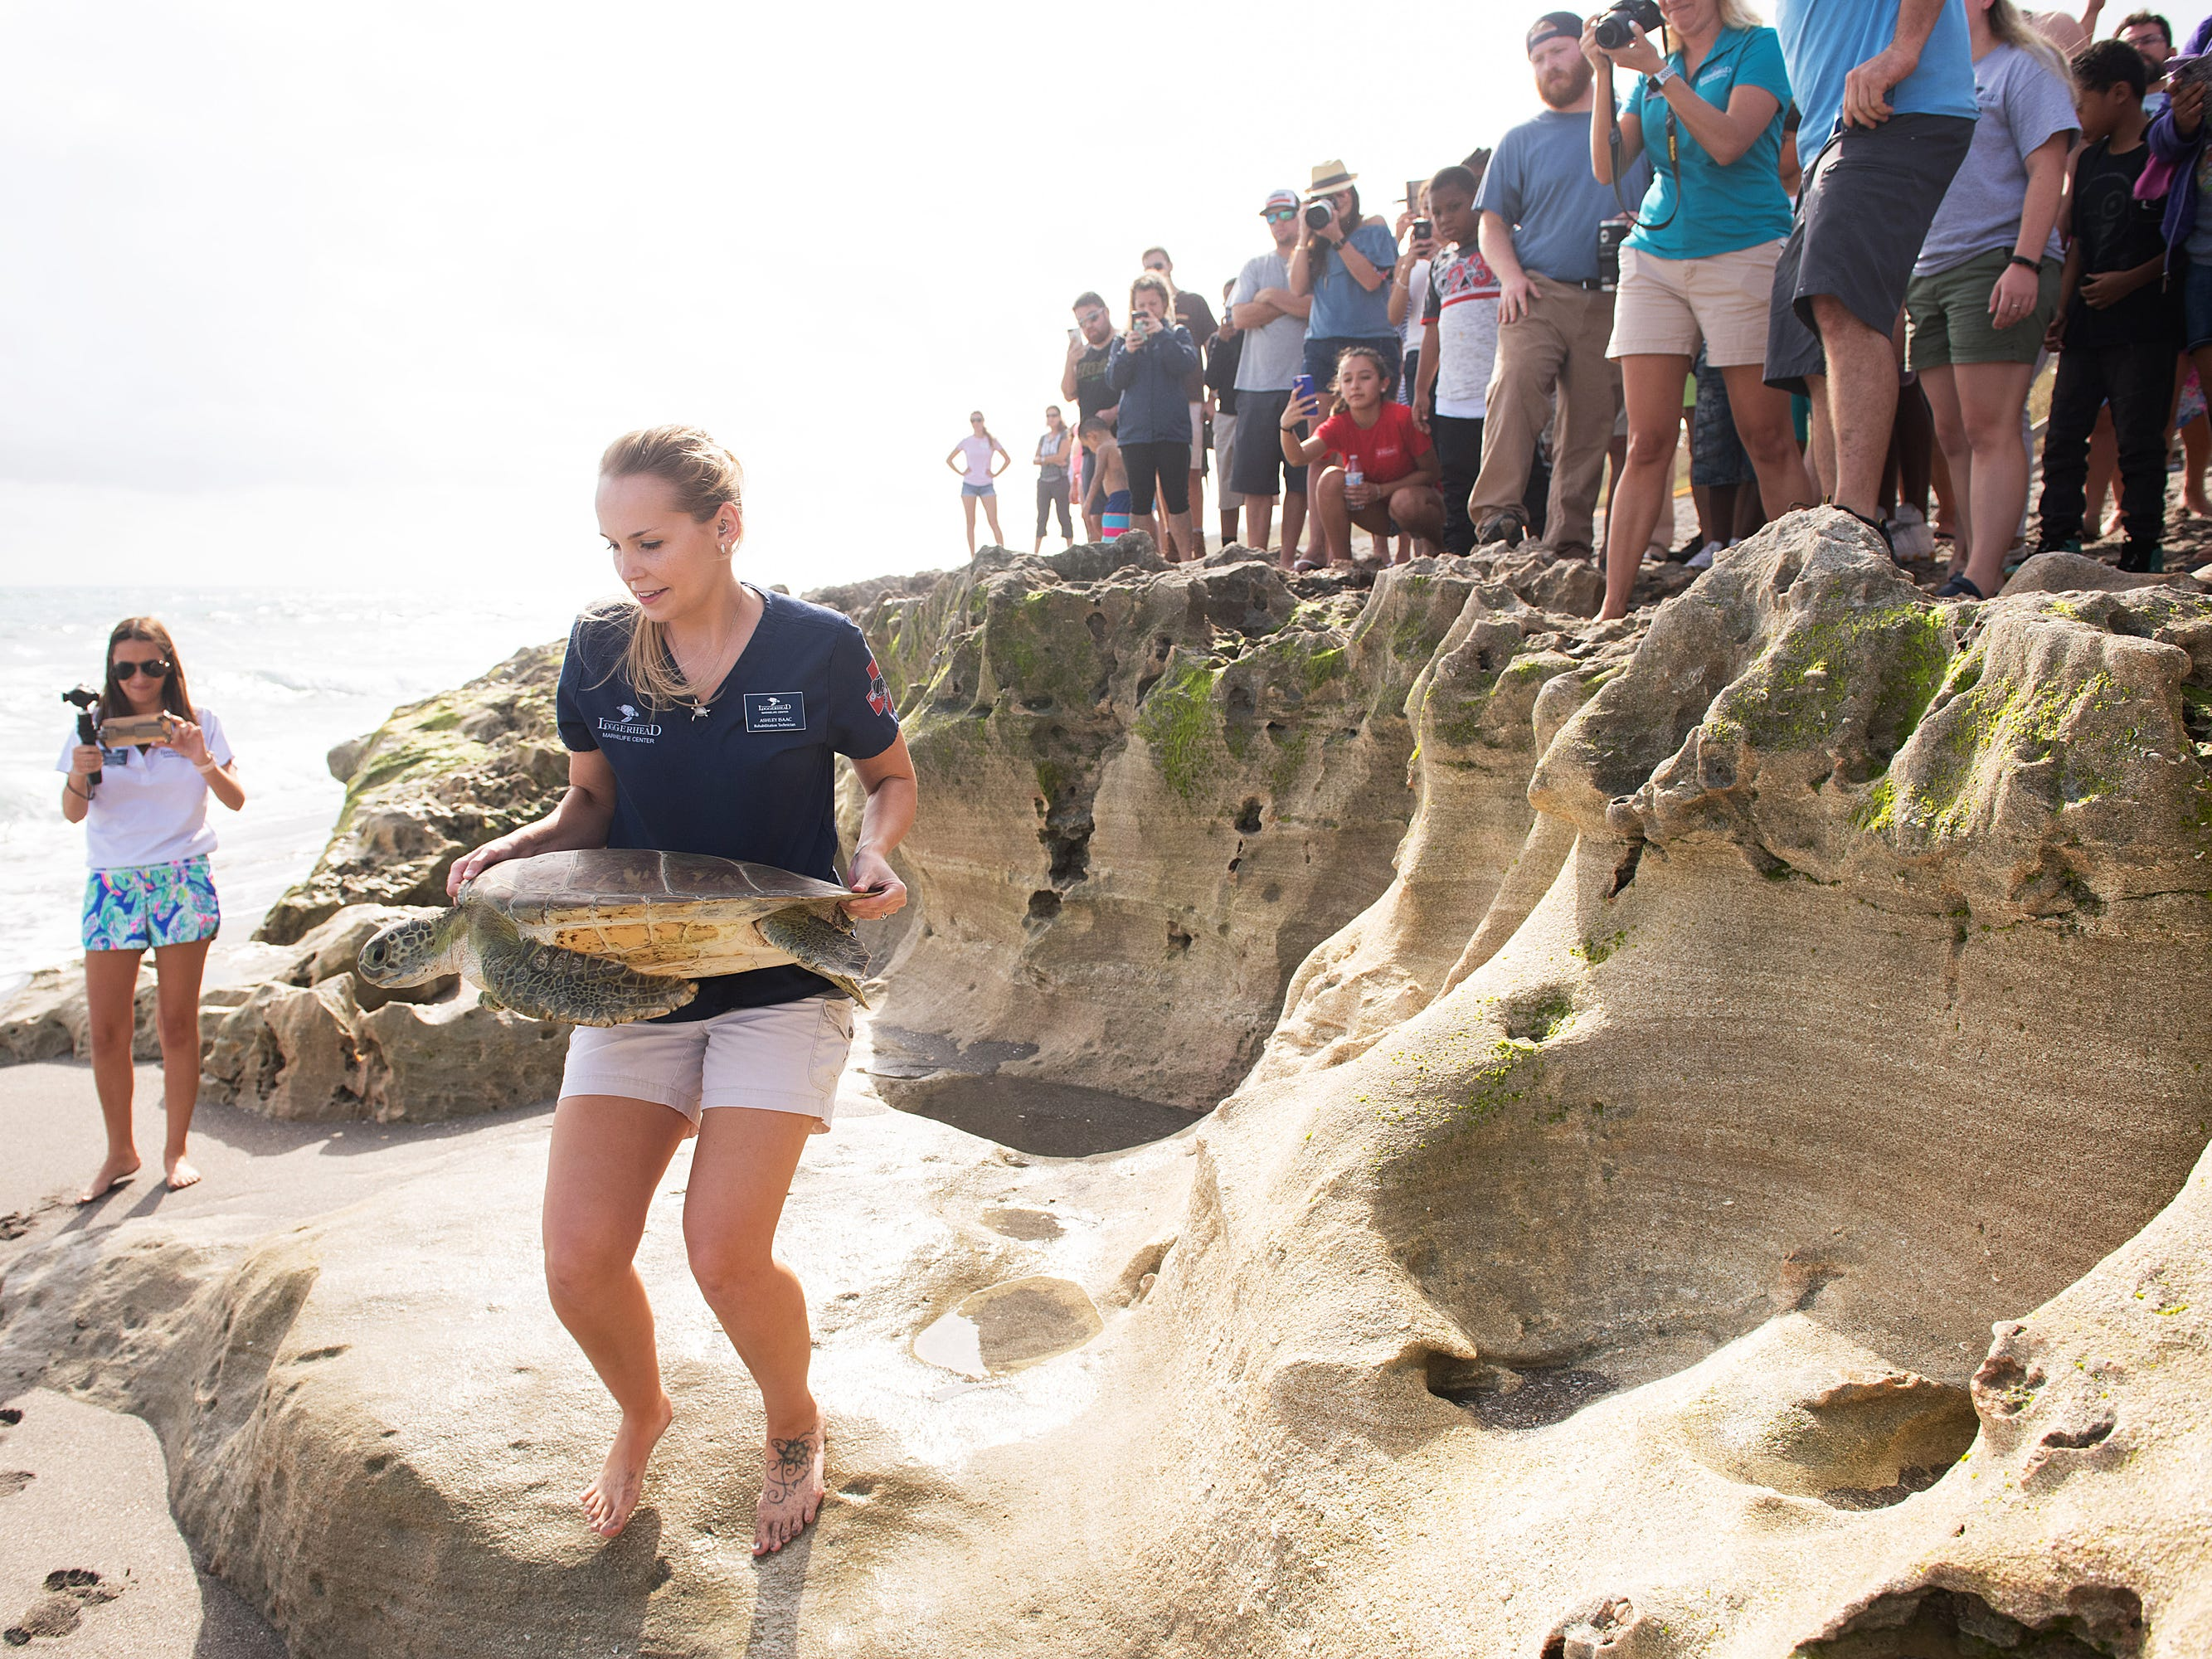 """Loggerhead Marinelife Center rehabilitation technician Ashley Isaac returns a rehabilitated 35 pound juvenile green sea turtle nicknamed """"Scallywag"""" to the ocean at the Nature ConservancyÕs Blowing Rocks Preserve on Thursday, Jan. 3, 2019, in Hobe Sound. The green sea turtle was found floating in the surf with serious injuries from what they believe to be a shark attack in December of 2016 and has spent the past two years undergoing rehabilitation at the Loggerhead Marinelife Center. """"We are very happy that Scallywag gets to return to its ocean home today,"""" said Isaac."""